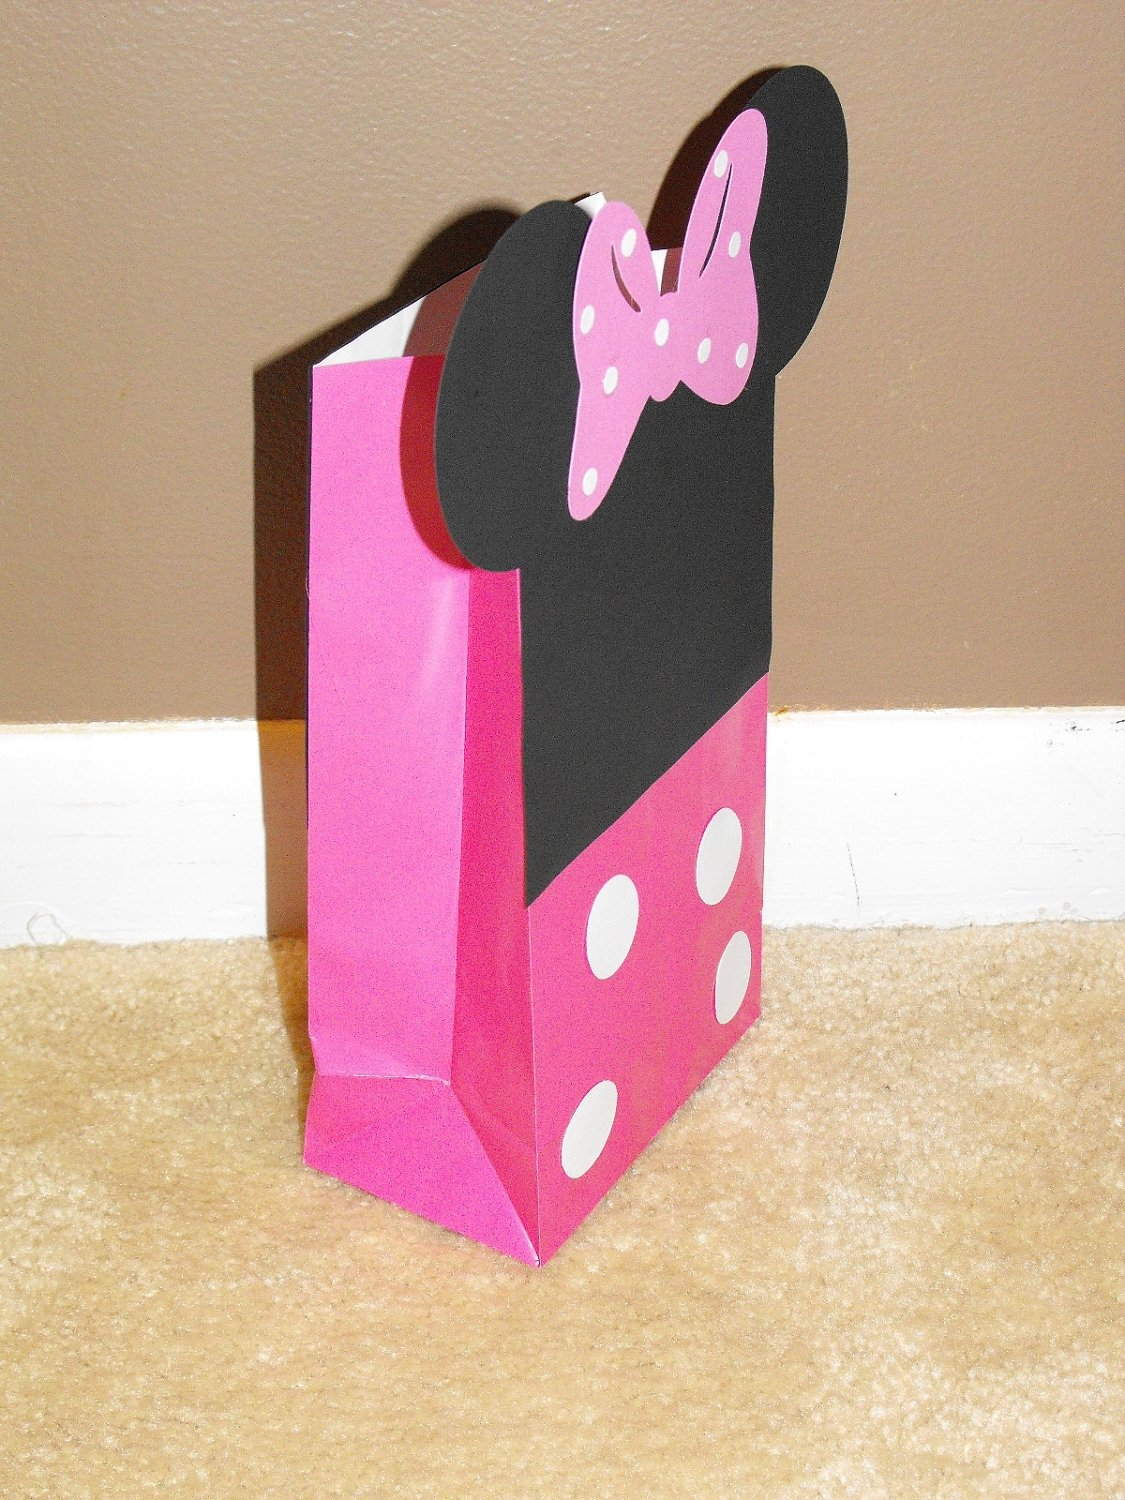 10 Beautiful Minnie Mouse Candy Bags Ideas minnie mouse goody bags minnie mouse treat bags goody bags 1 2020